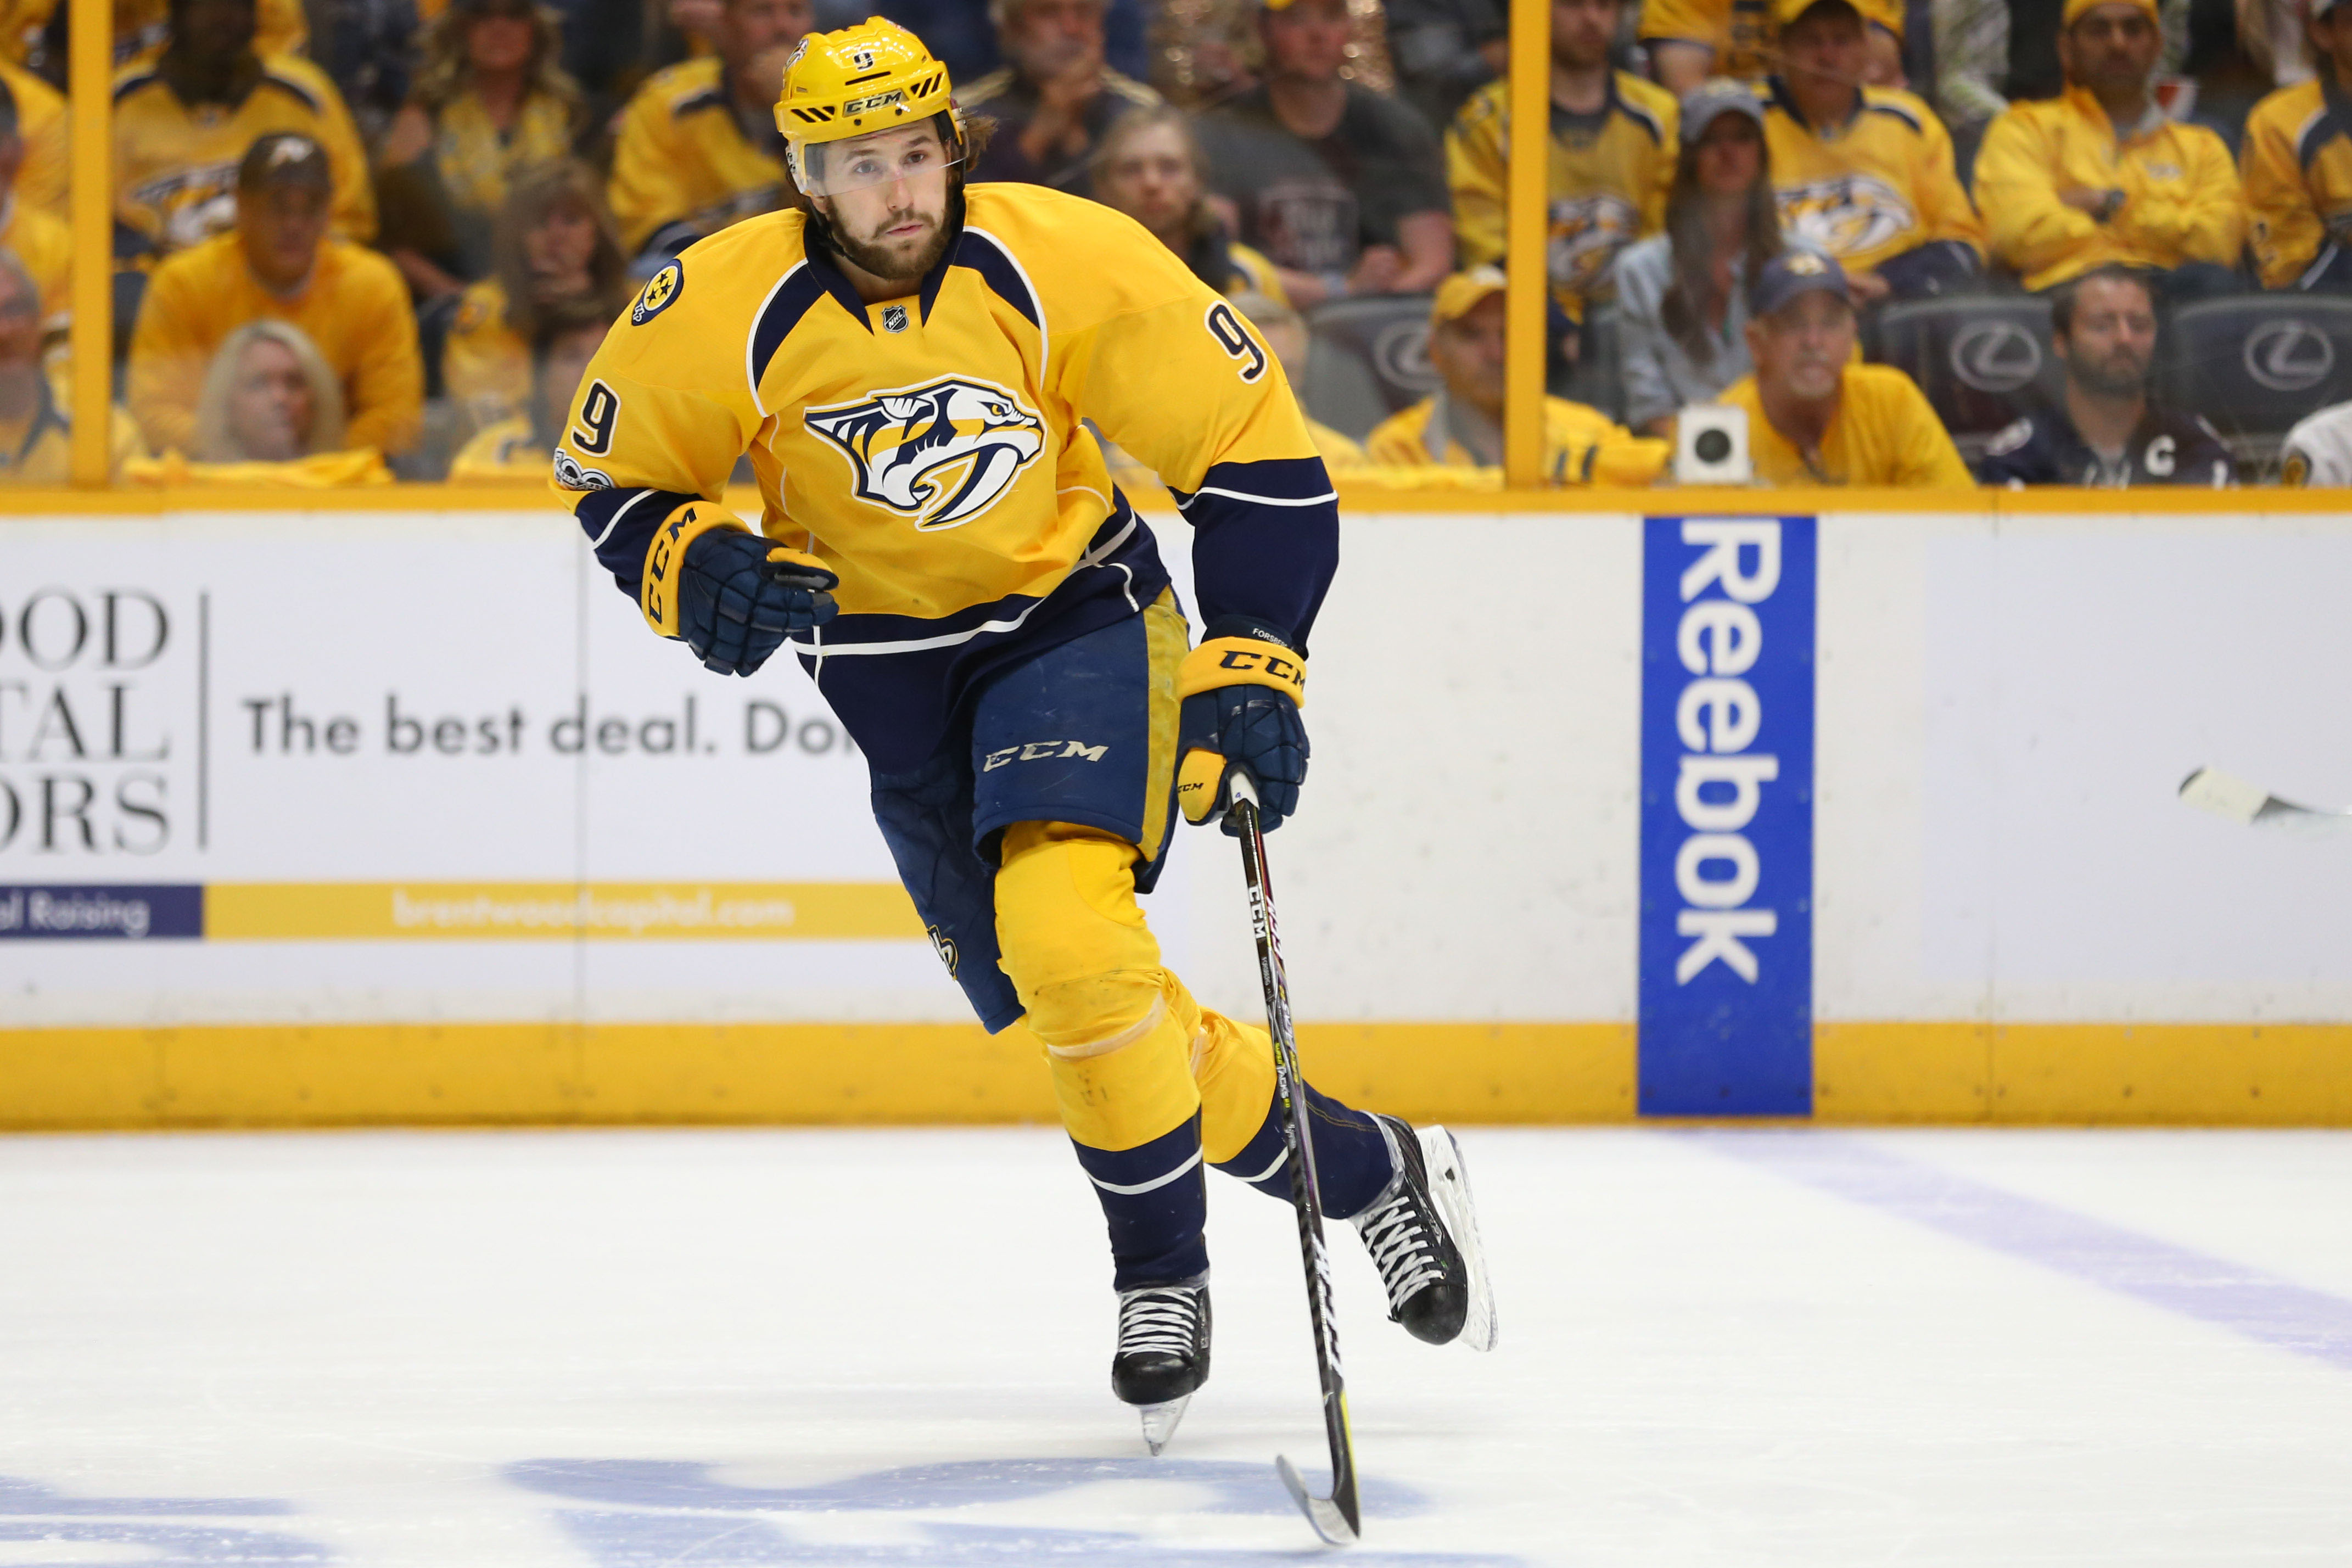 10079236-nhl-stanley-cup-playoffs-anaheim-ducks-at-nashville-predators